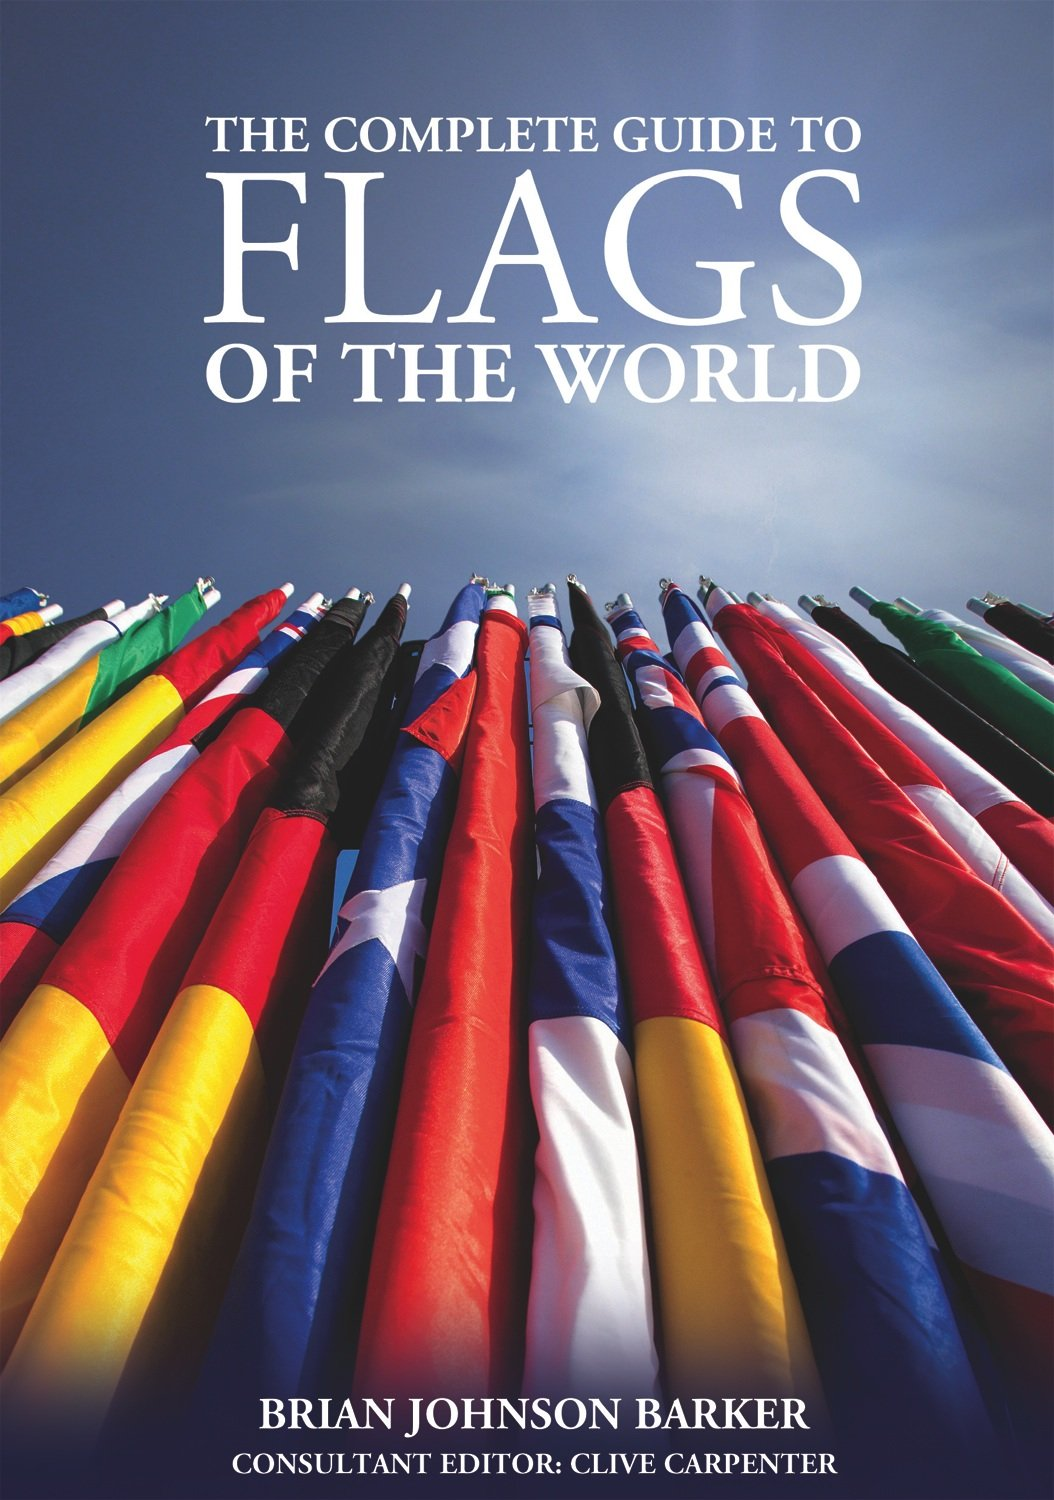 Download Complete Guide to Flags of the World, The PDF